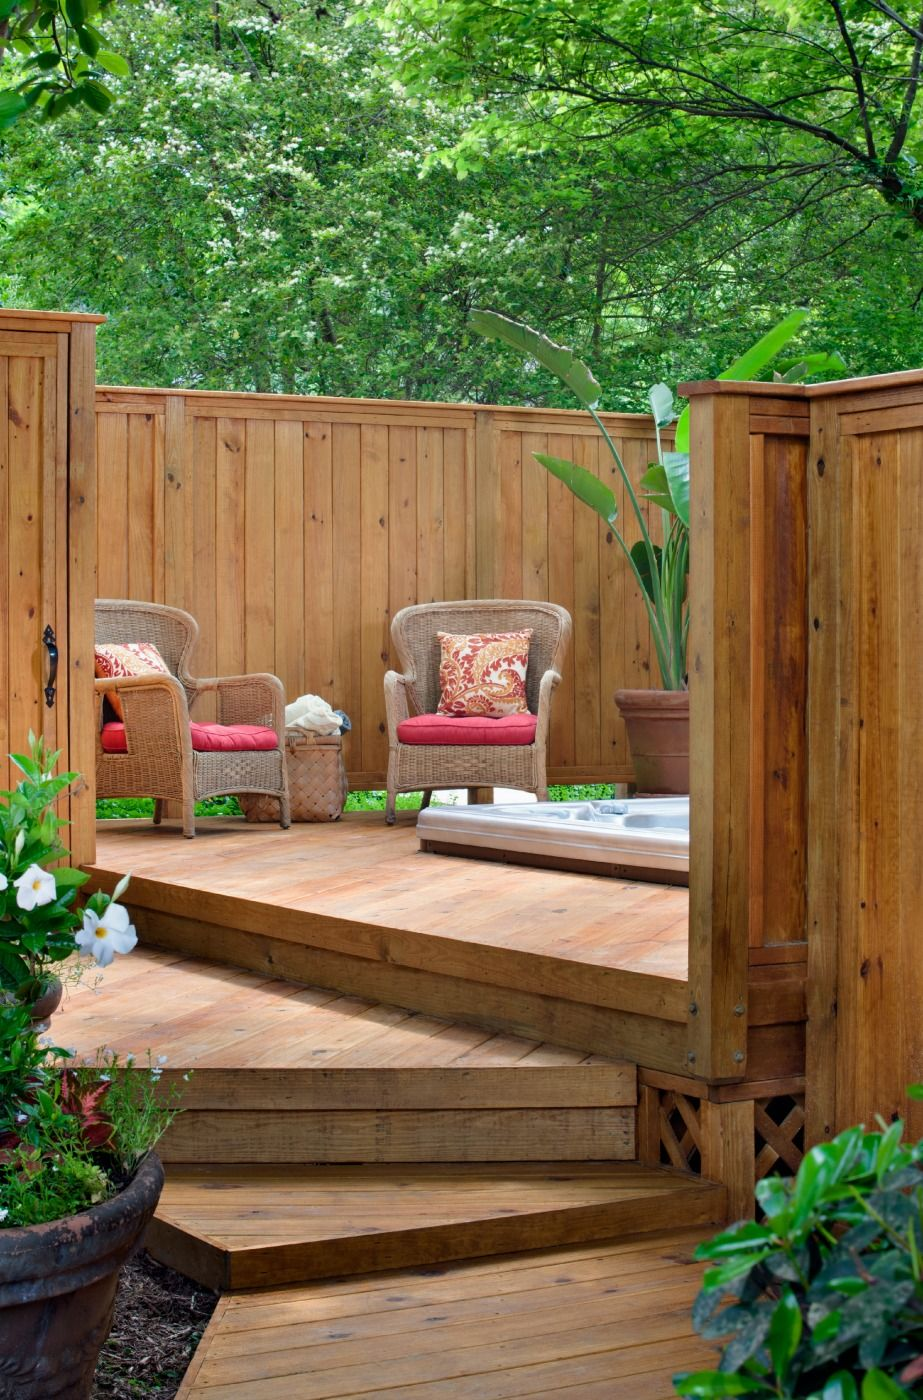 Wooden Deck Design with Privacy Fence for